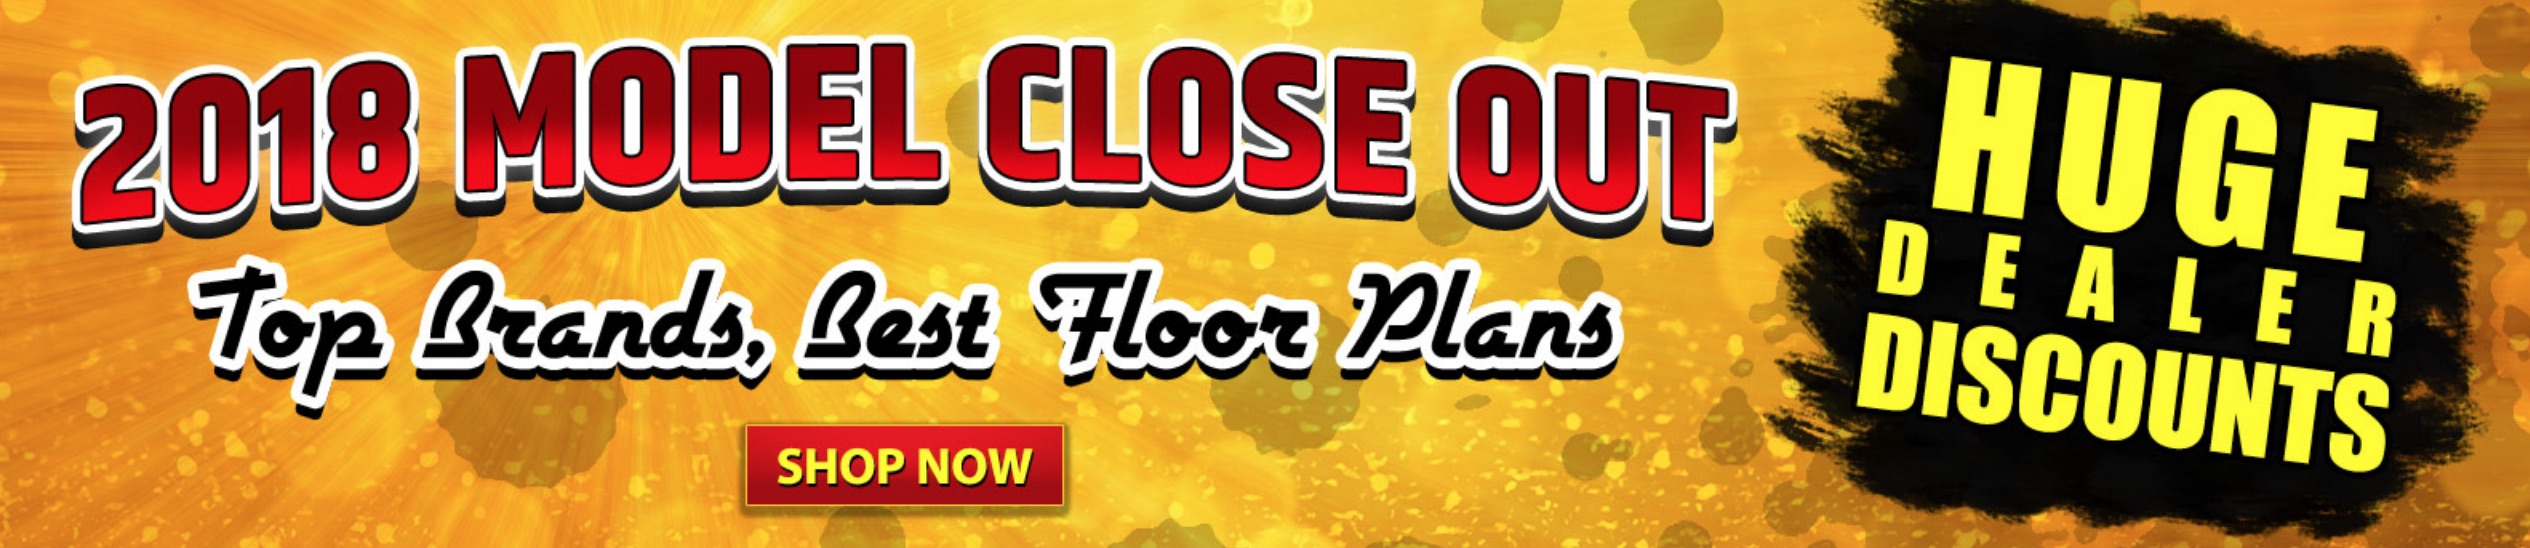 2018 Model Closeout Banner